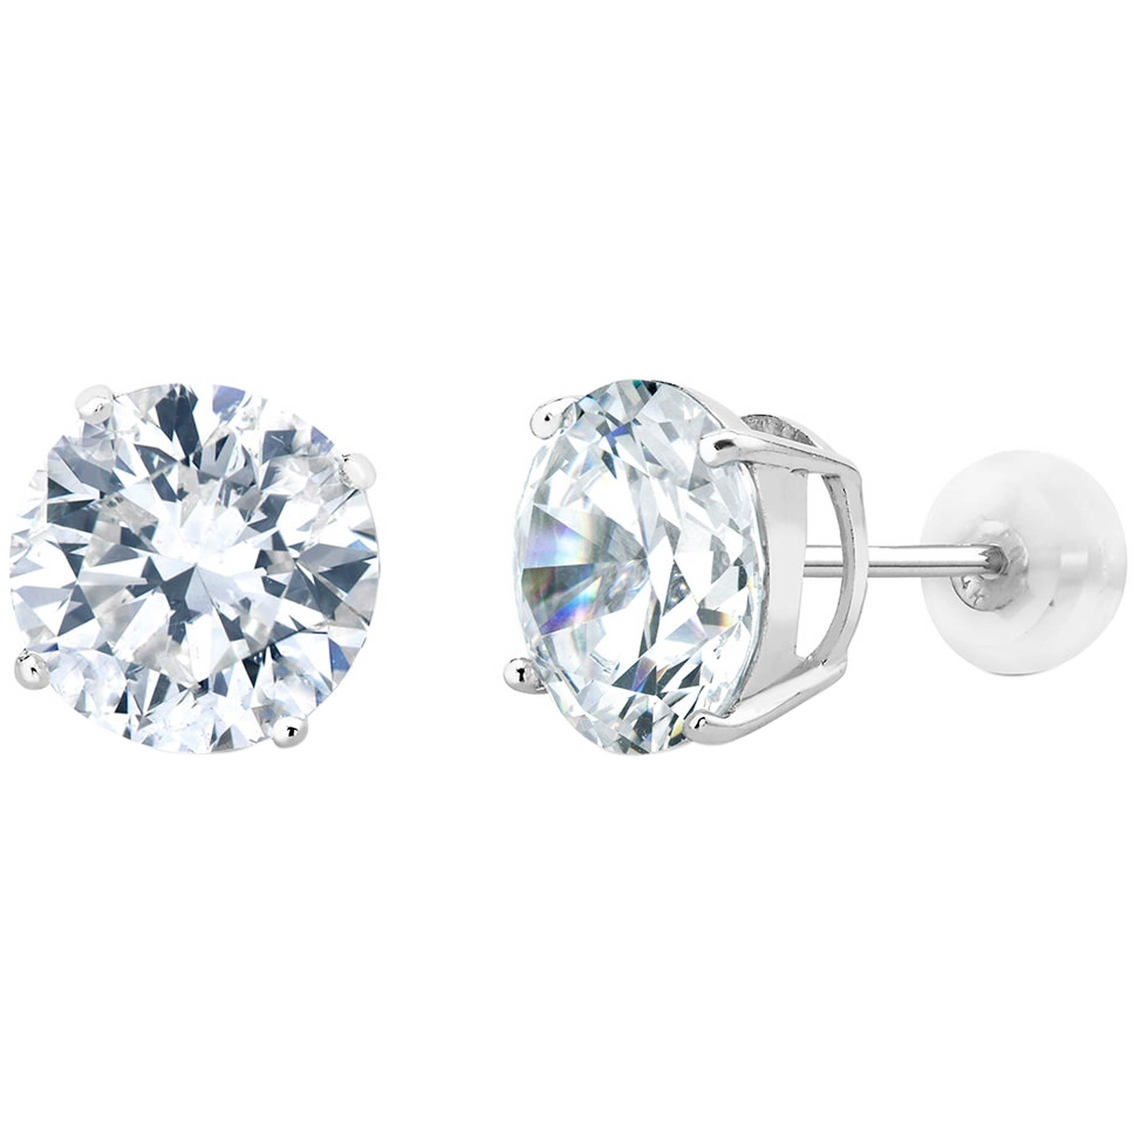 14k White Gold 0 9 Ctw Round Simulated Diamond Stud Earrings